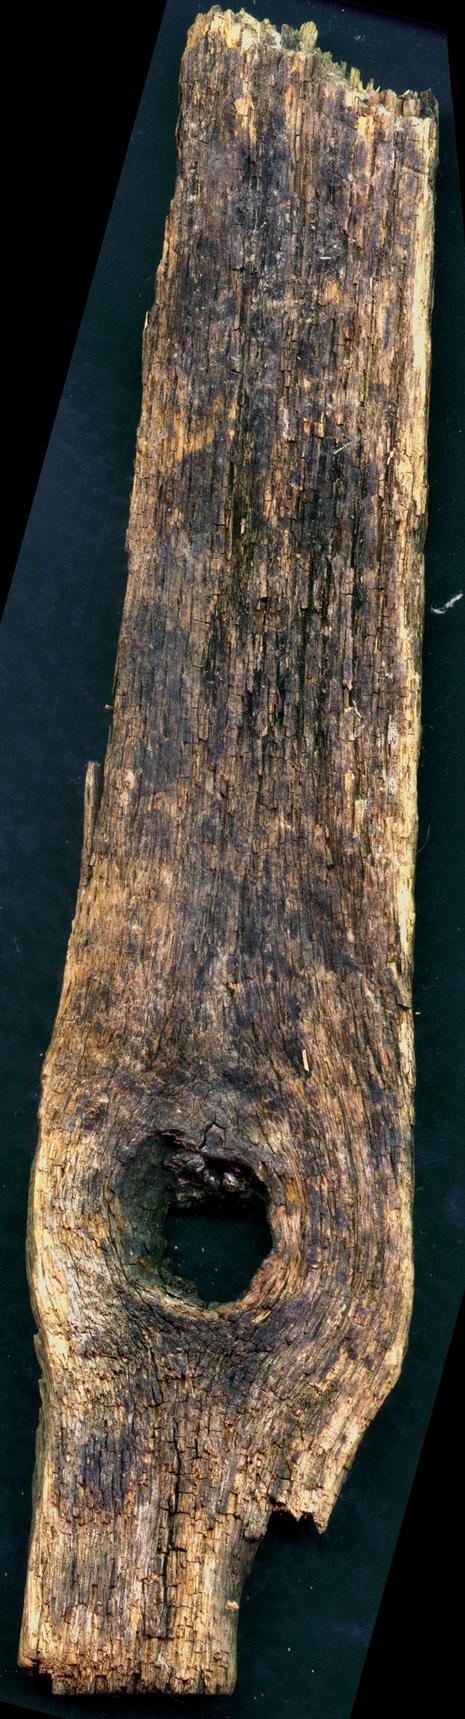 ars-driftwood2 by ars-natura